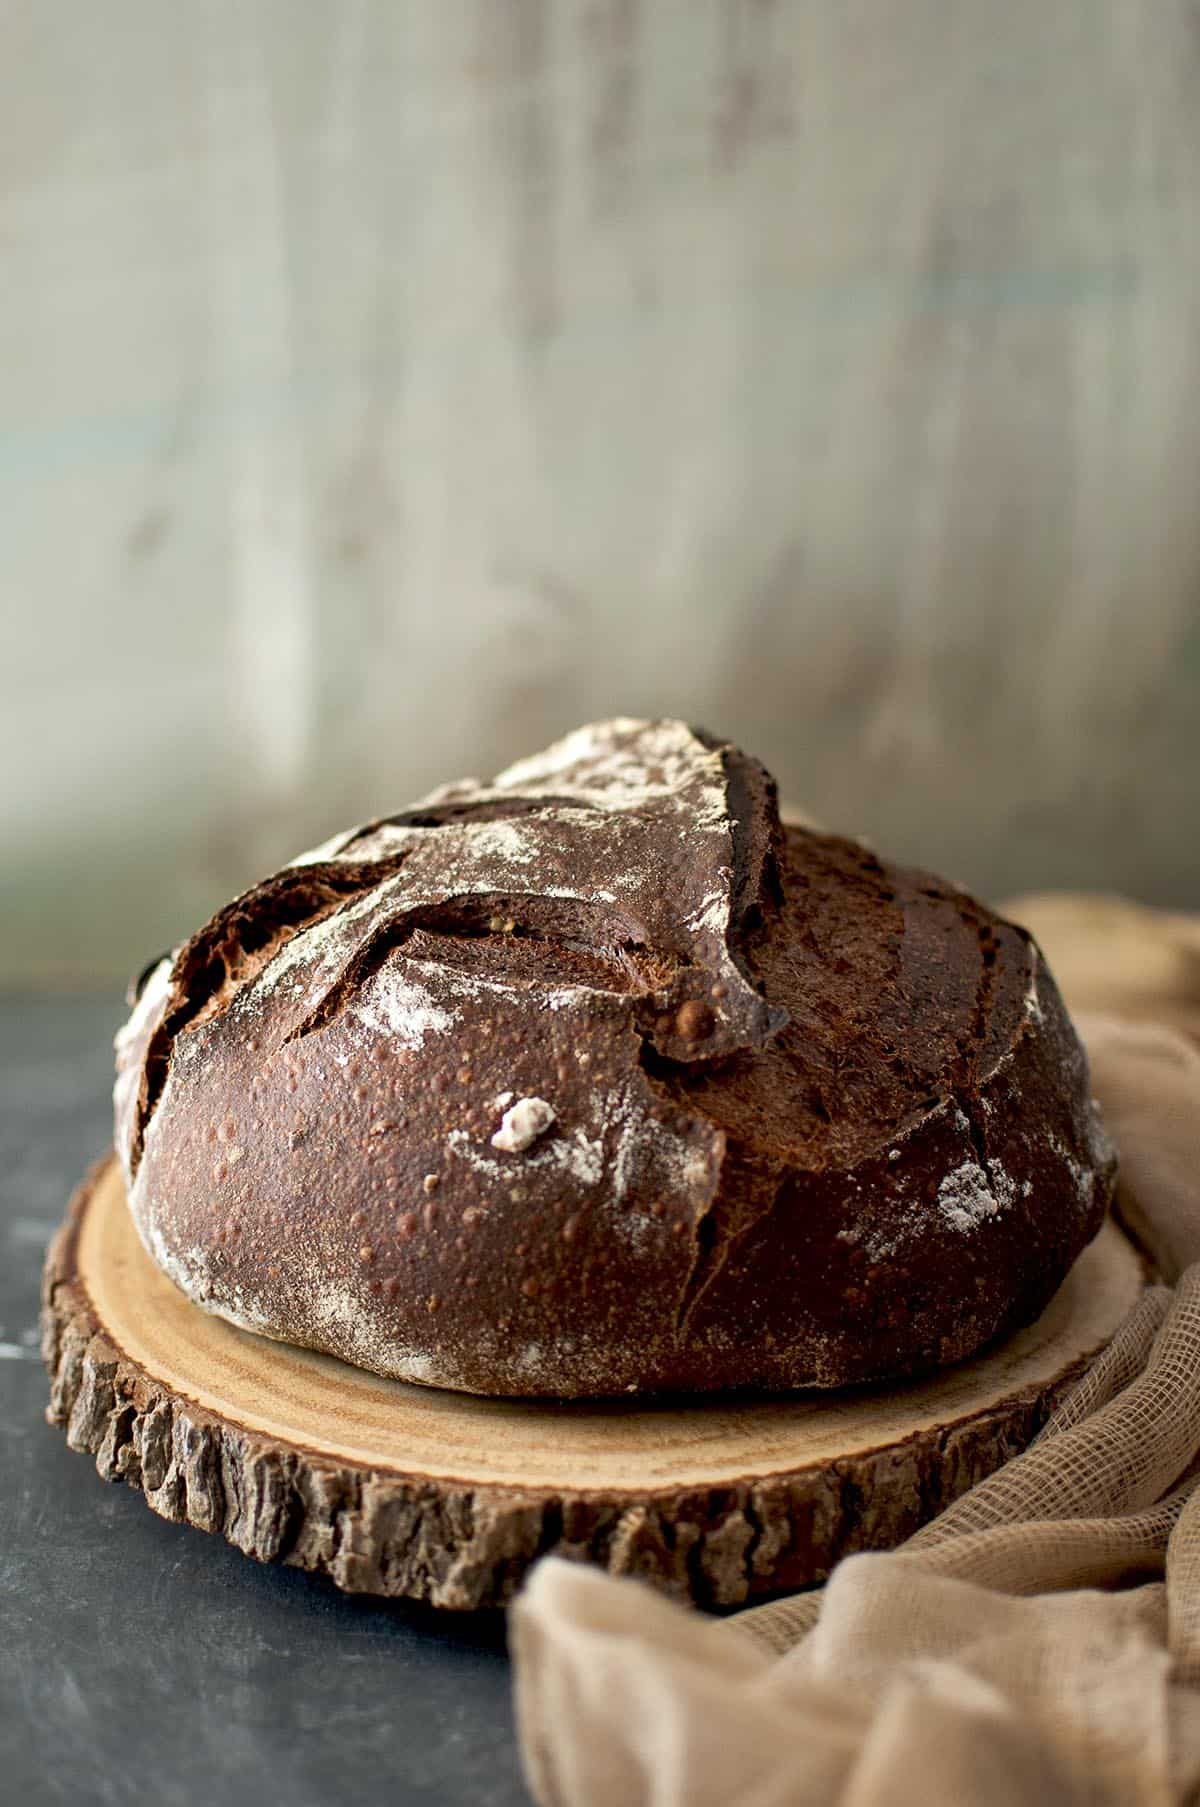 Wooden chopping board with a loaf of chocolate sourdough bread